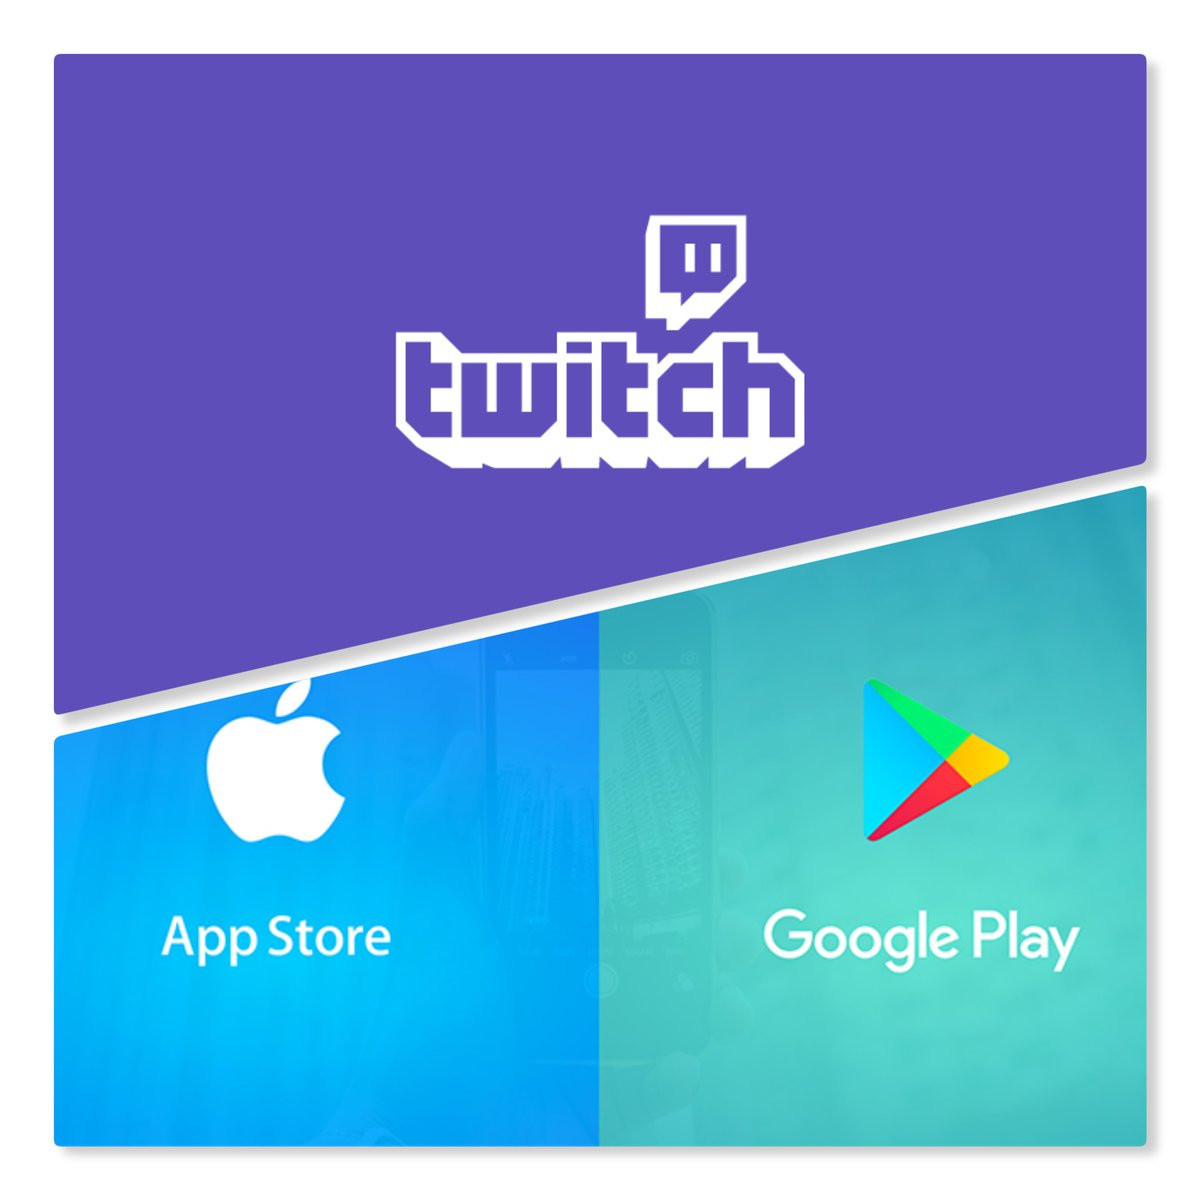 Ascolta e Guarda Radio FM Faleria:   Twitch: https://bit.ly/2OUQzTE Apple: https://apple.co/2pnGK5Y Android: https://bit.ly/2Bfybg7  #radiofm #radiofmfaleria #twitch #apple #android #iOS #dubstep #instagood #beat #beats #jamspic.twitter.com/o2bsmoDzyP